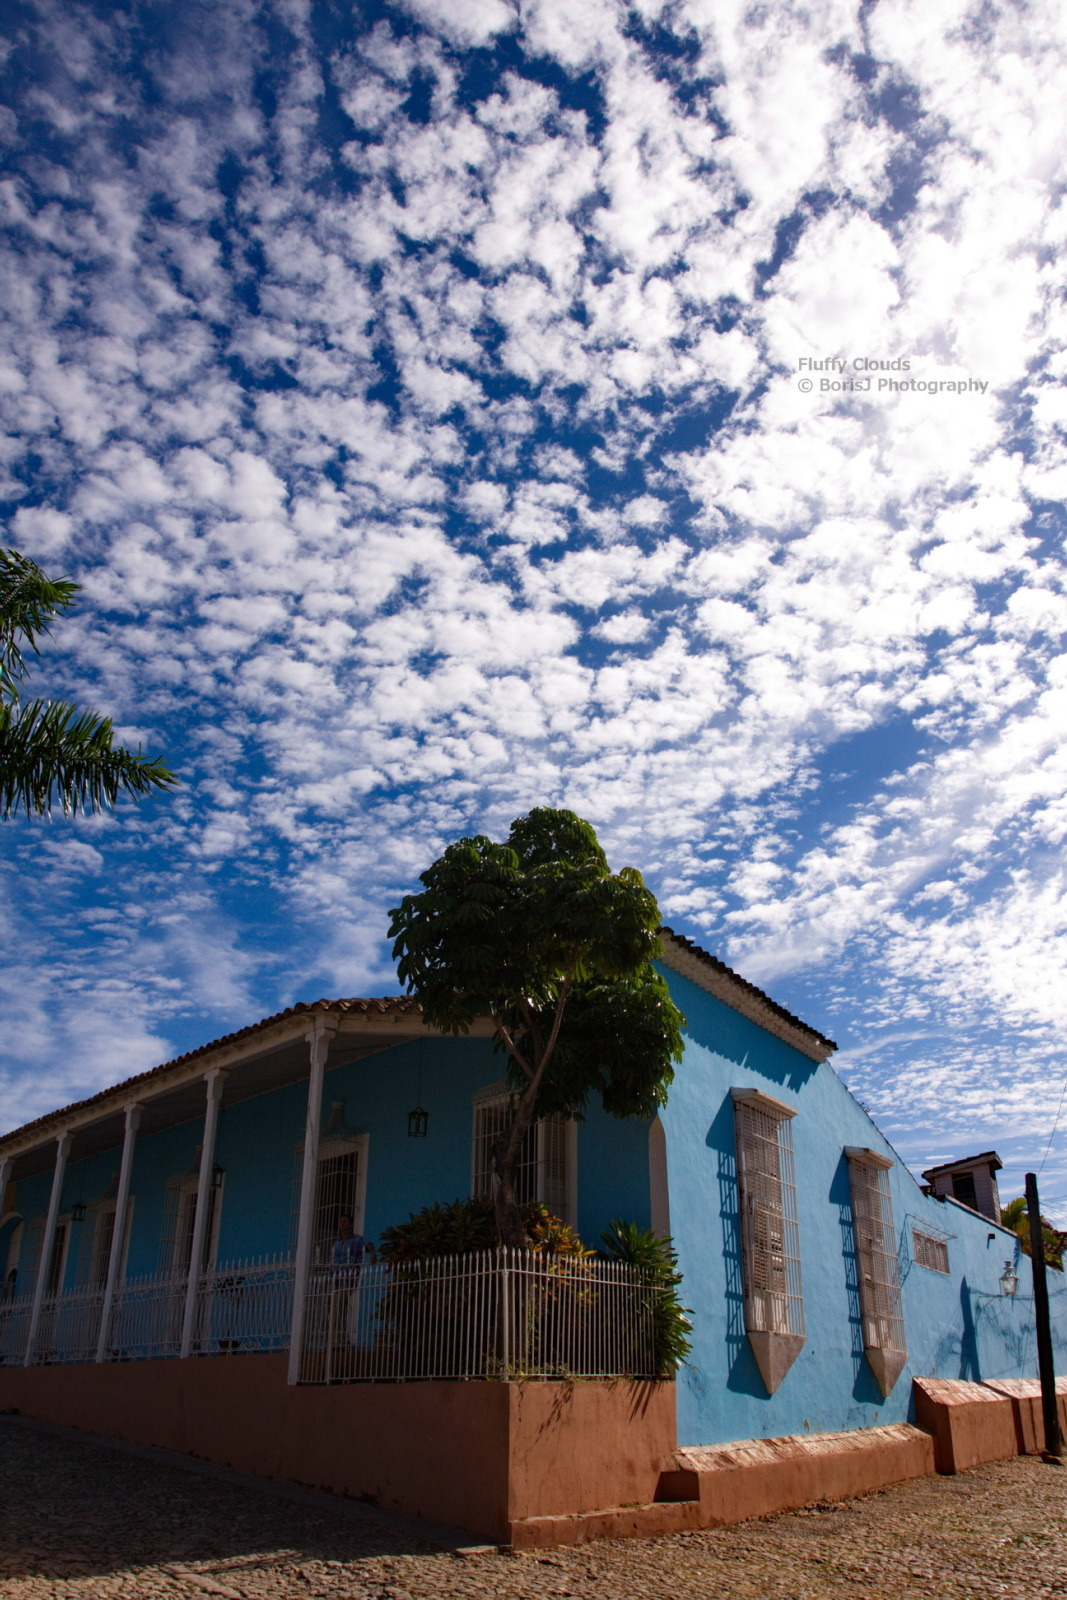 Fluffy Clouds Walking thru the Streets of Trinidad, Cuba. Canon EOS 40D1/400sISO 400f/14.1 Trinidad,Cuba Flickr - Twitter - Facebook - Google+ - Posterous - 500px Copyright © BorisJ Photography - Boris Jusseit - all rights reserved - please do not use this image on any media without my permission.